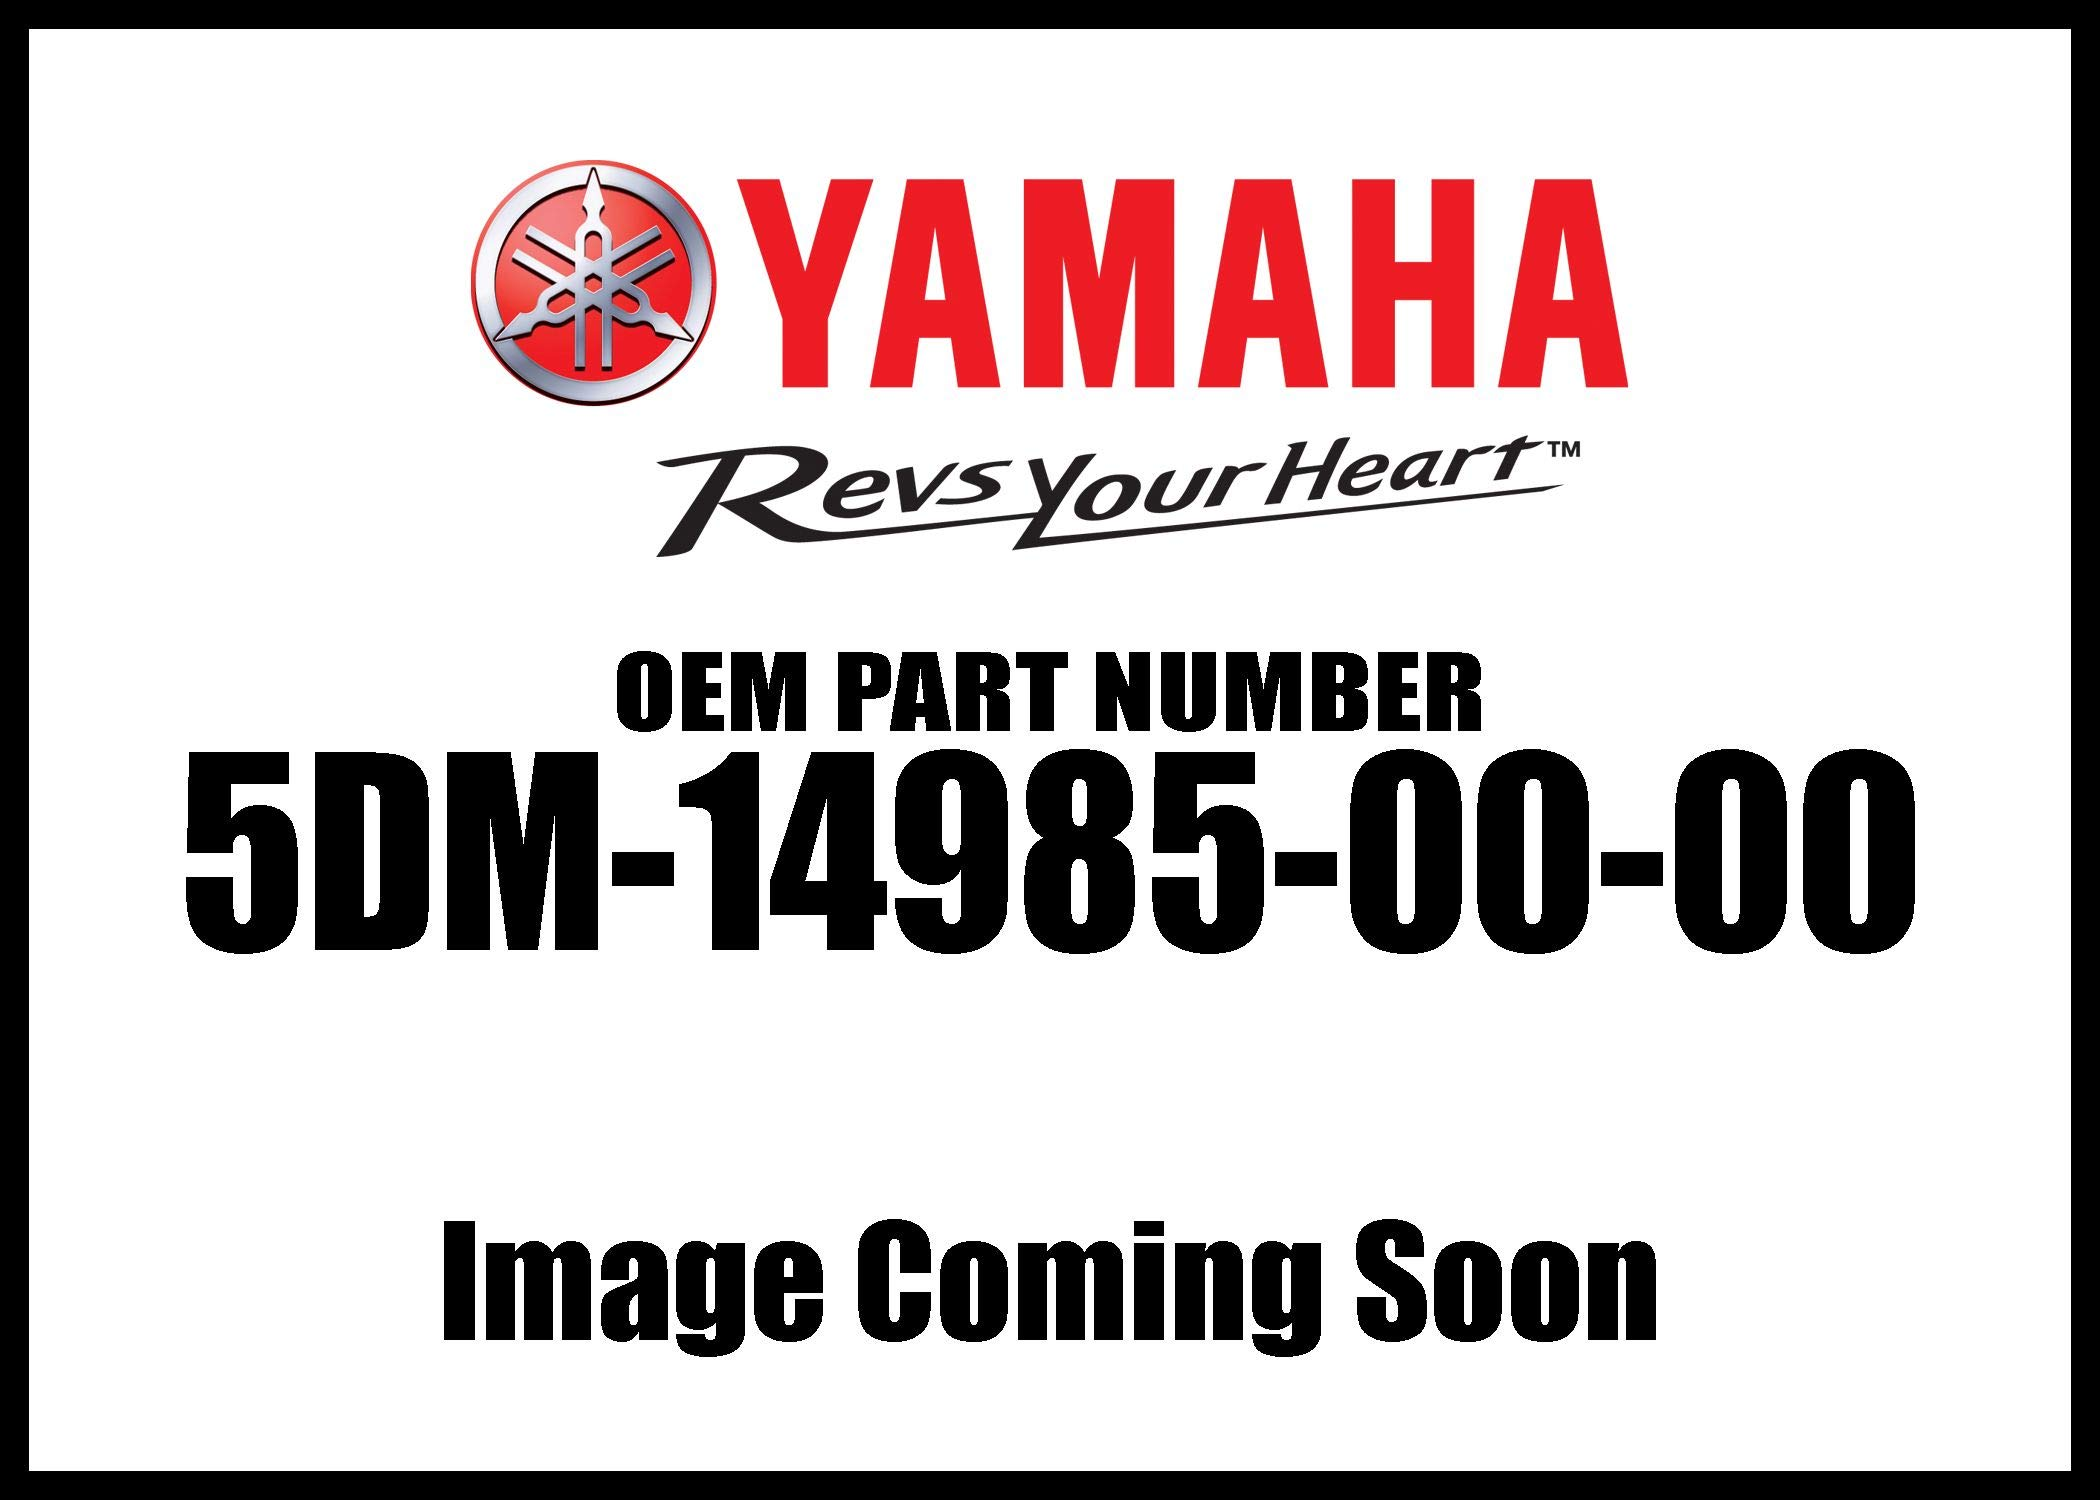 Yamaha 5DM-14985-00-00 Float; ATV Motorcycle Snow Mobile Scooter Parts by Yamaha